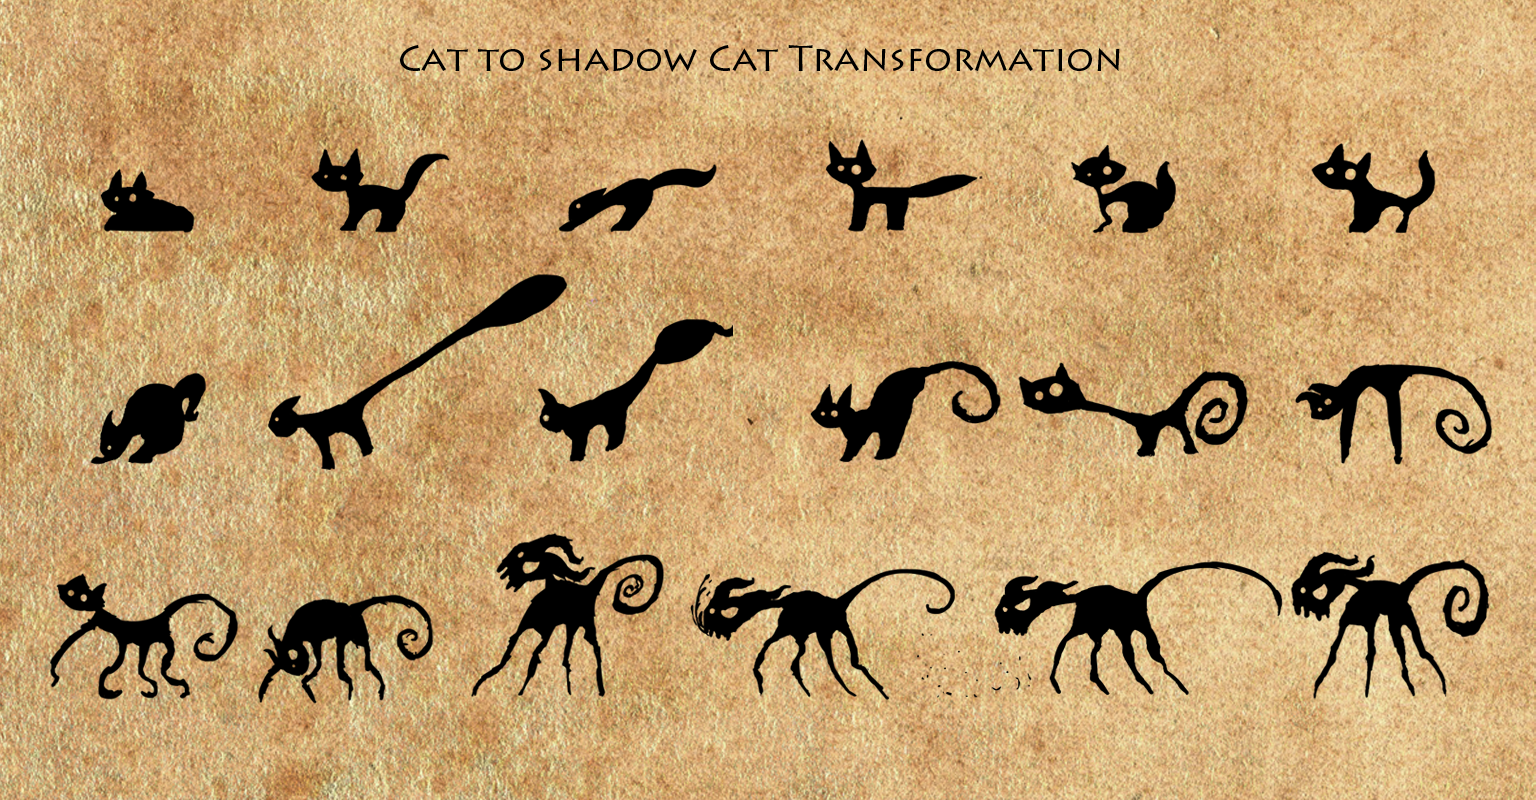 Frames from the Shadow Cat's transformation.